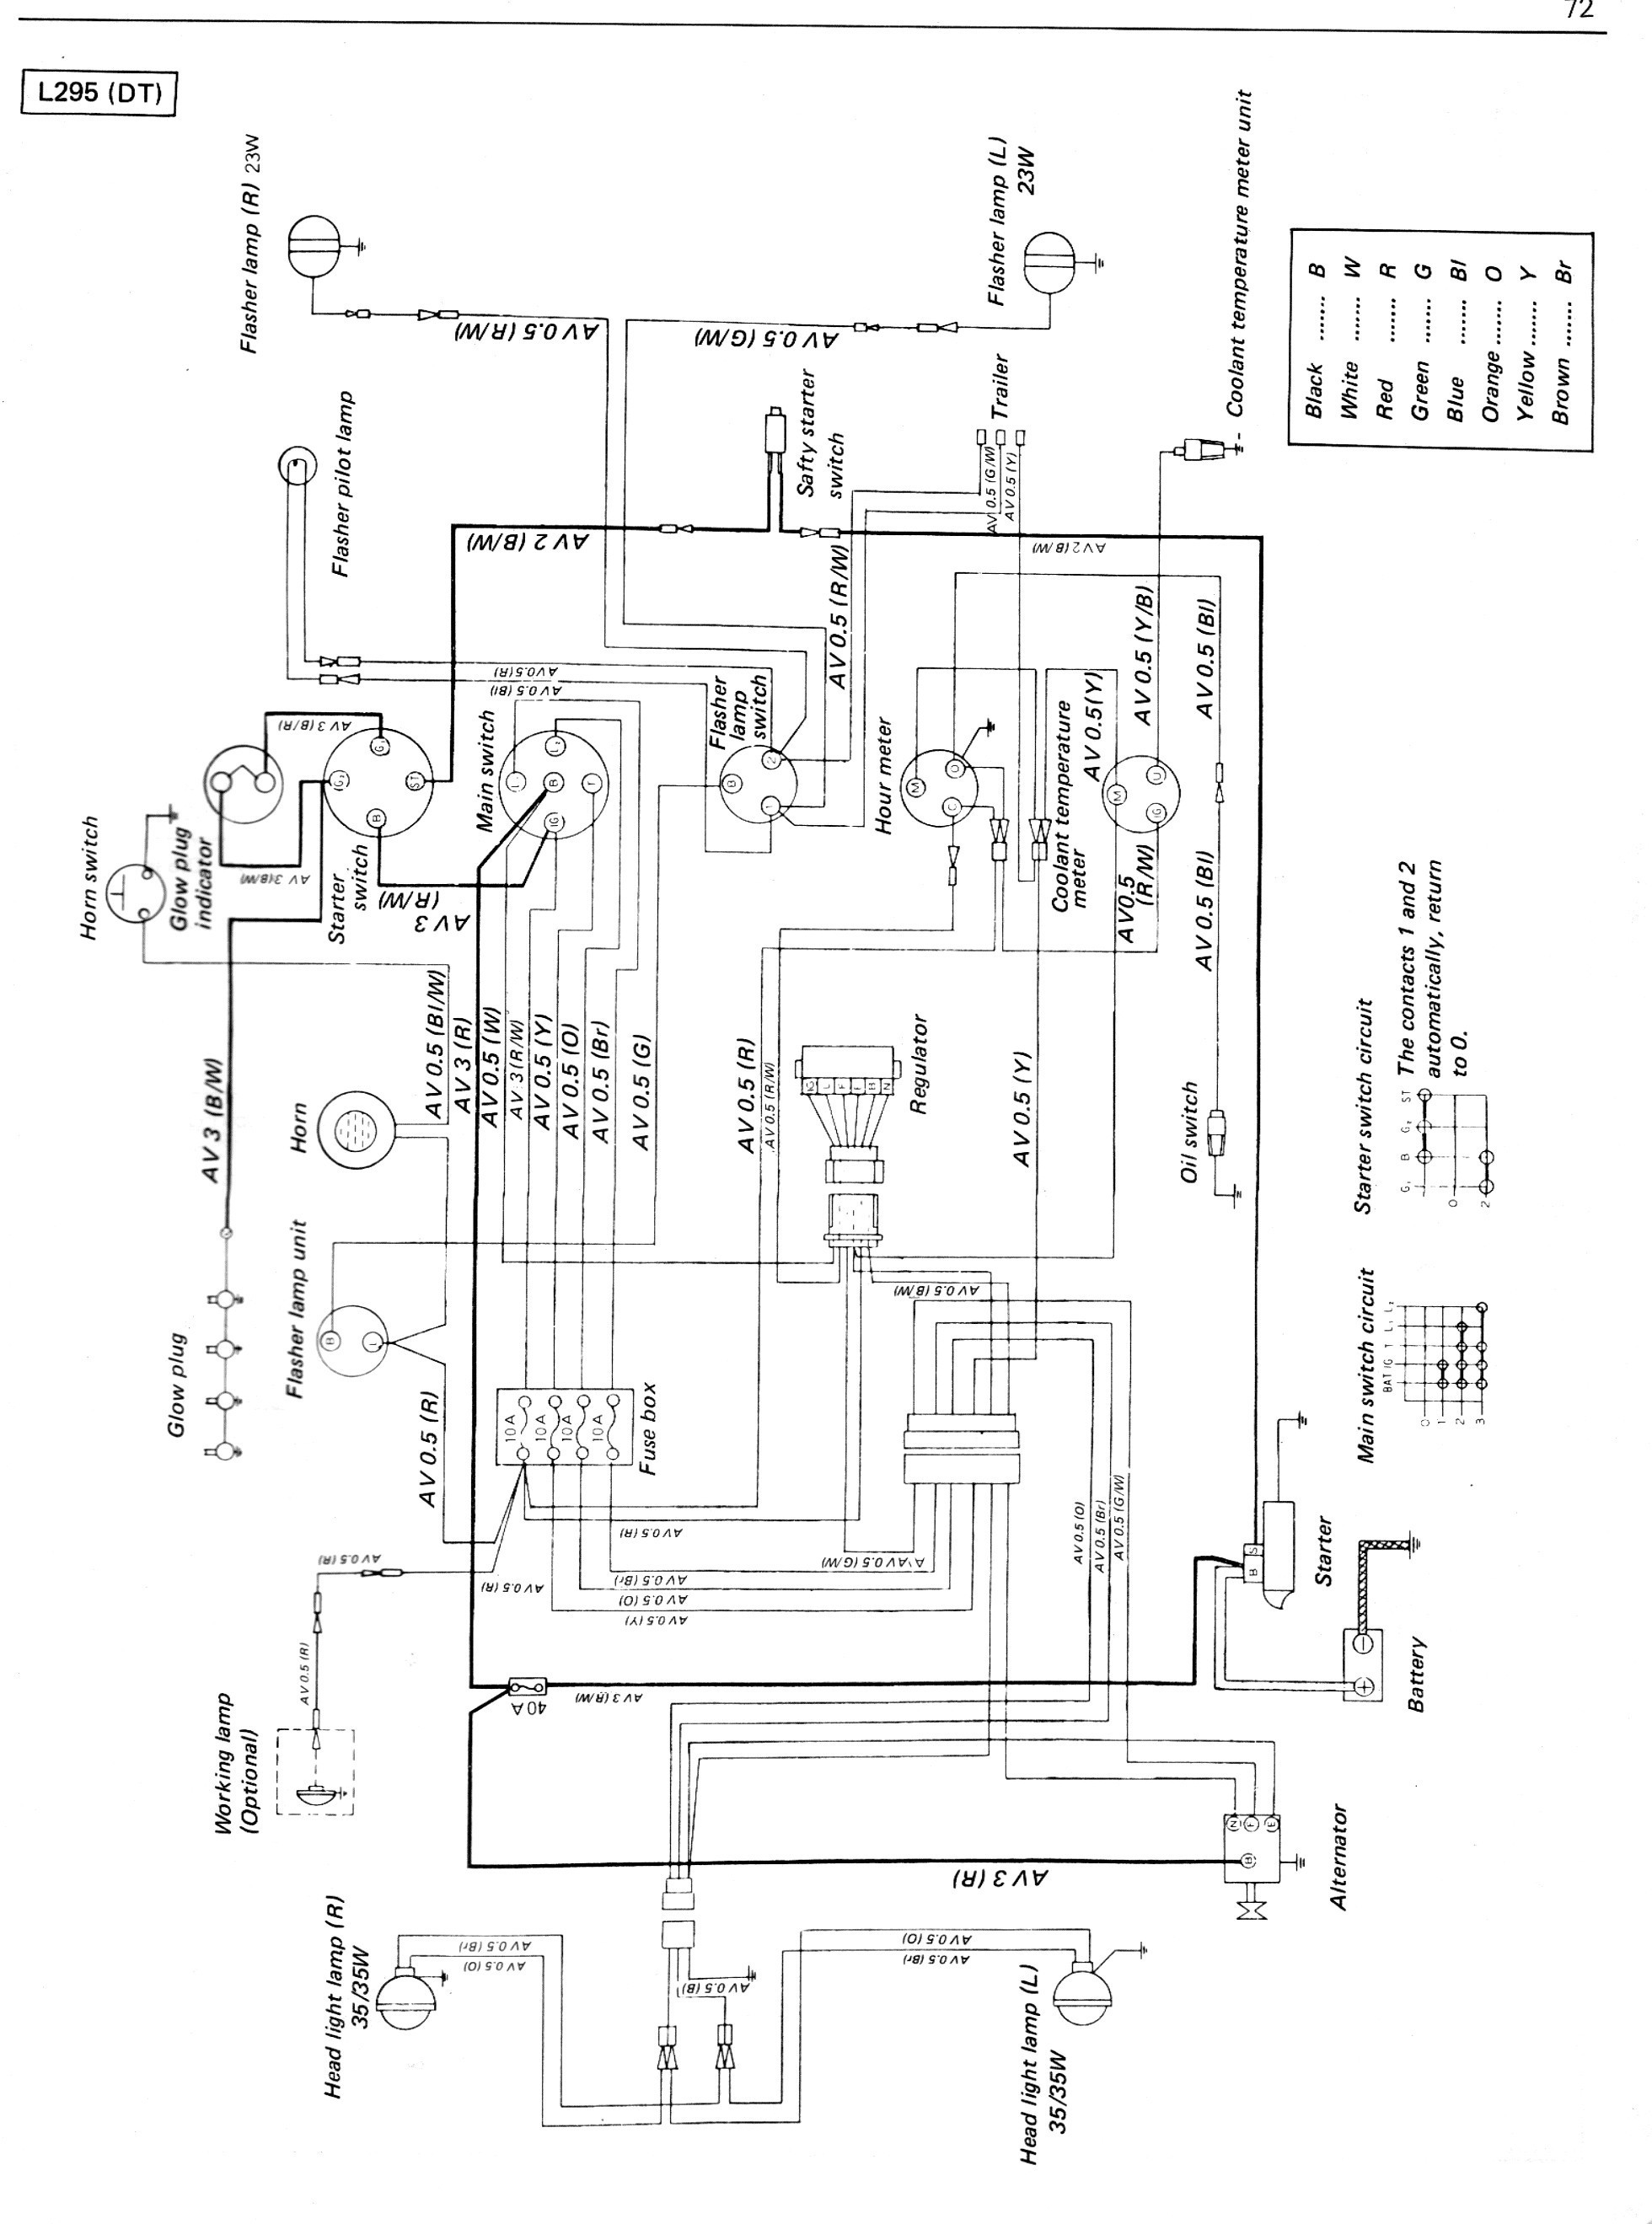 7 3 diesel engine diagram wiring diagram yamaha 125zr save 5 7 7 3 diesel engine diagram vw wiring diagram alternator new diesel engine alternator wiring of 7 asfbconference2016 Choice Image